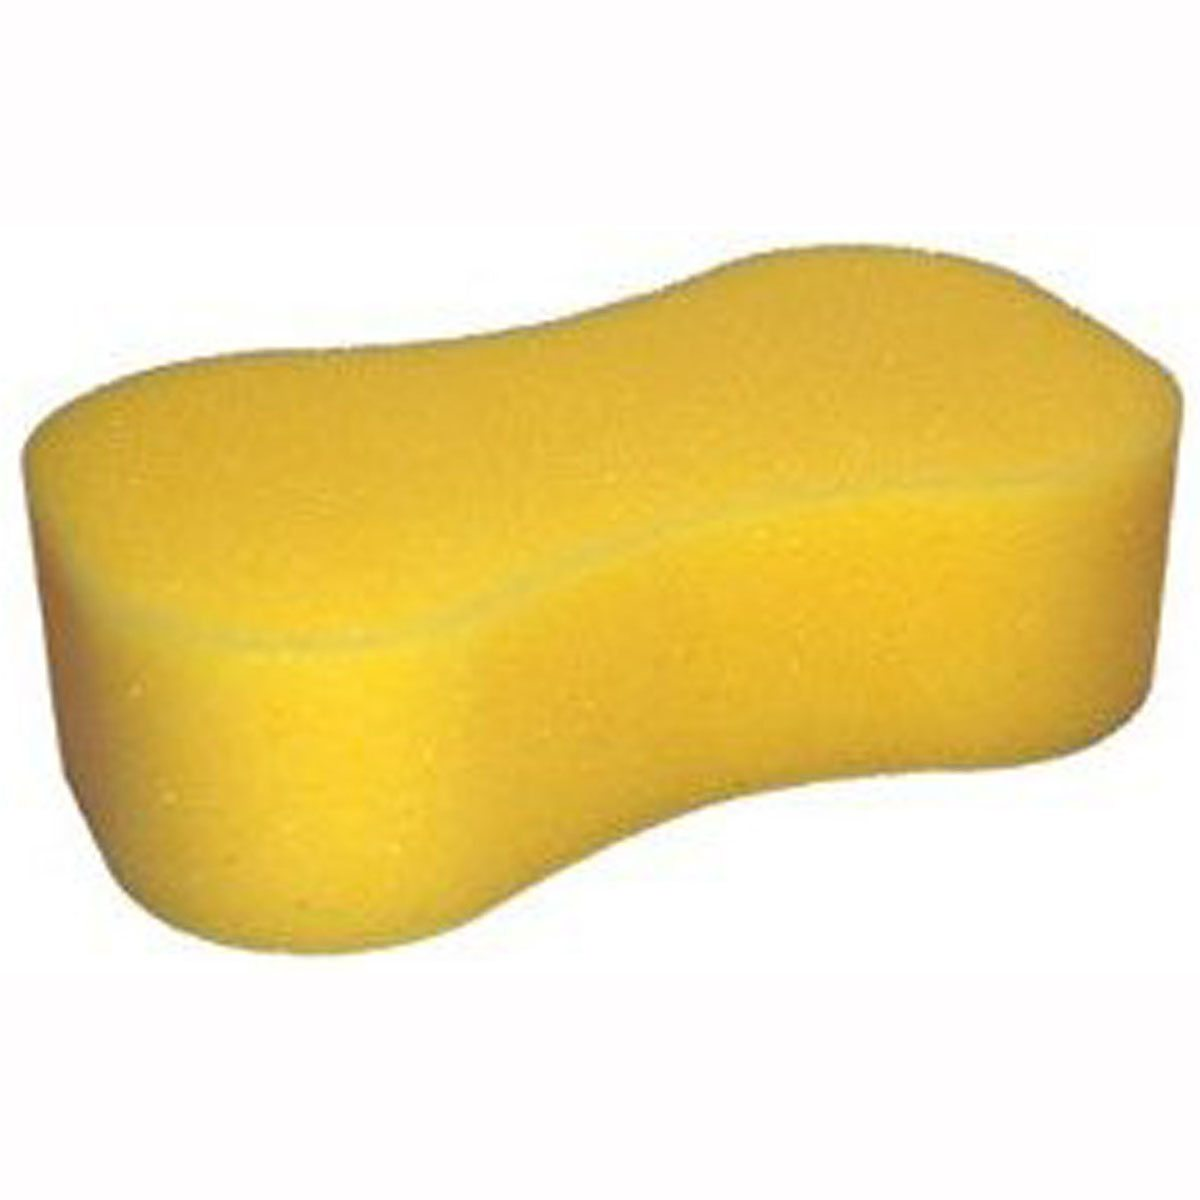 Standard Jumbo Sponge Car Care Ireland